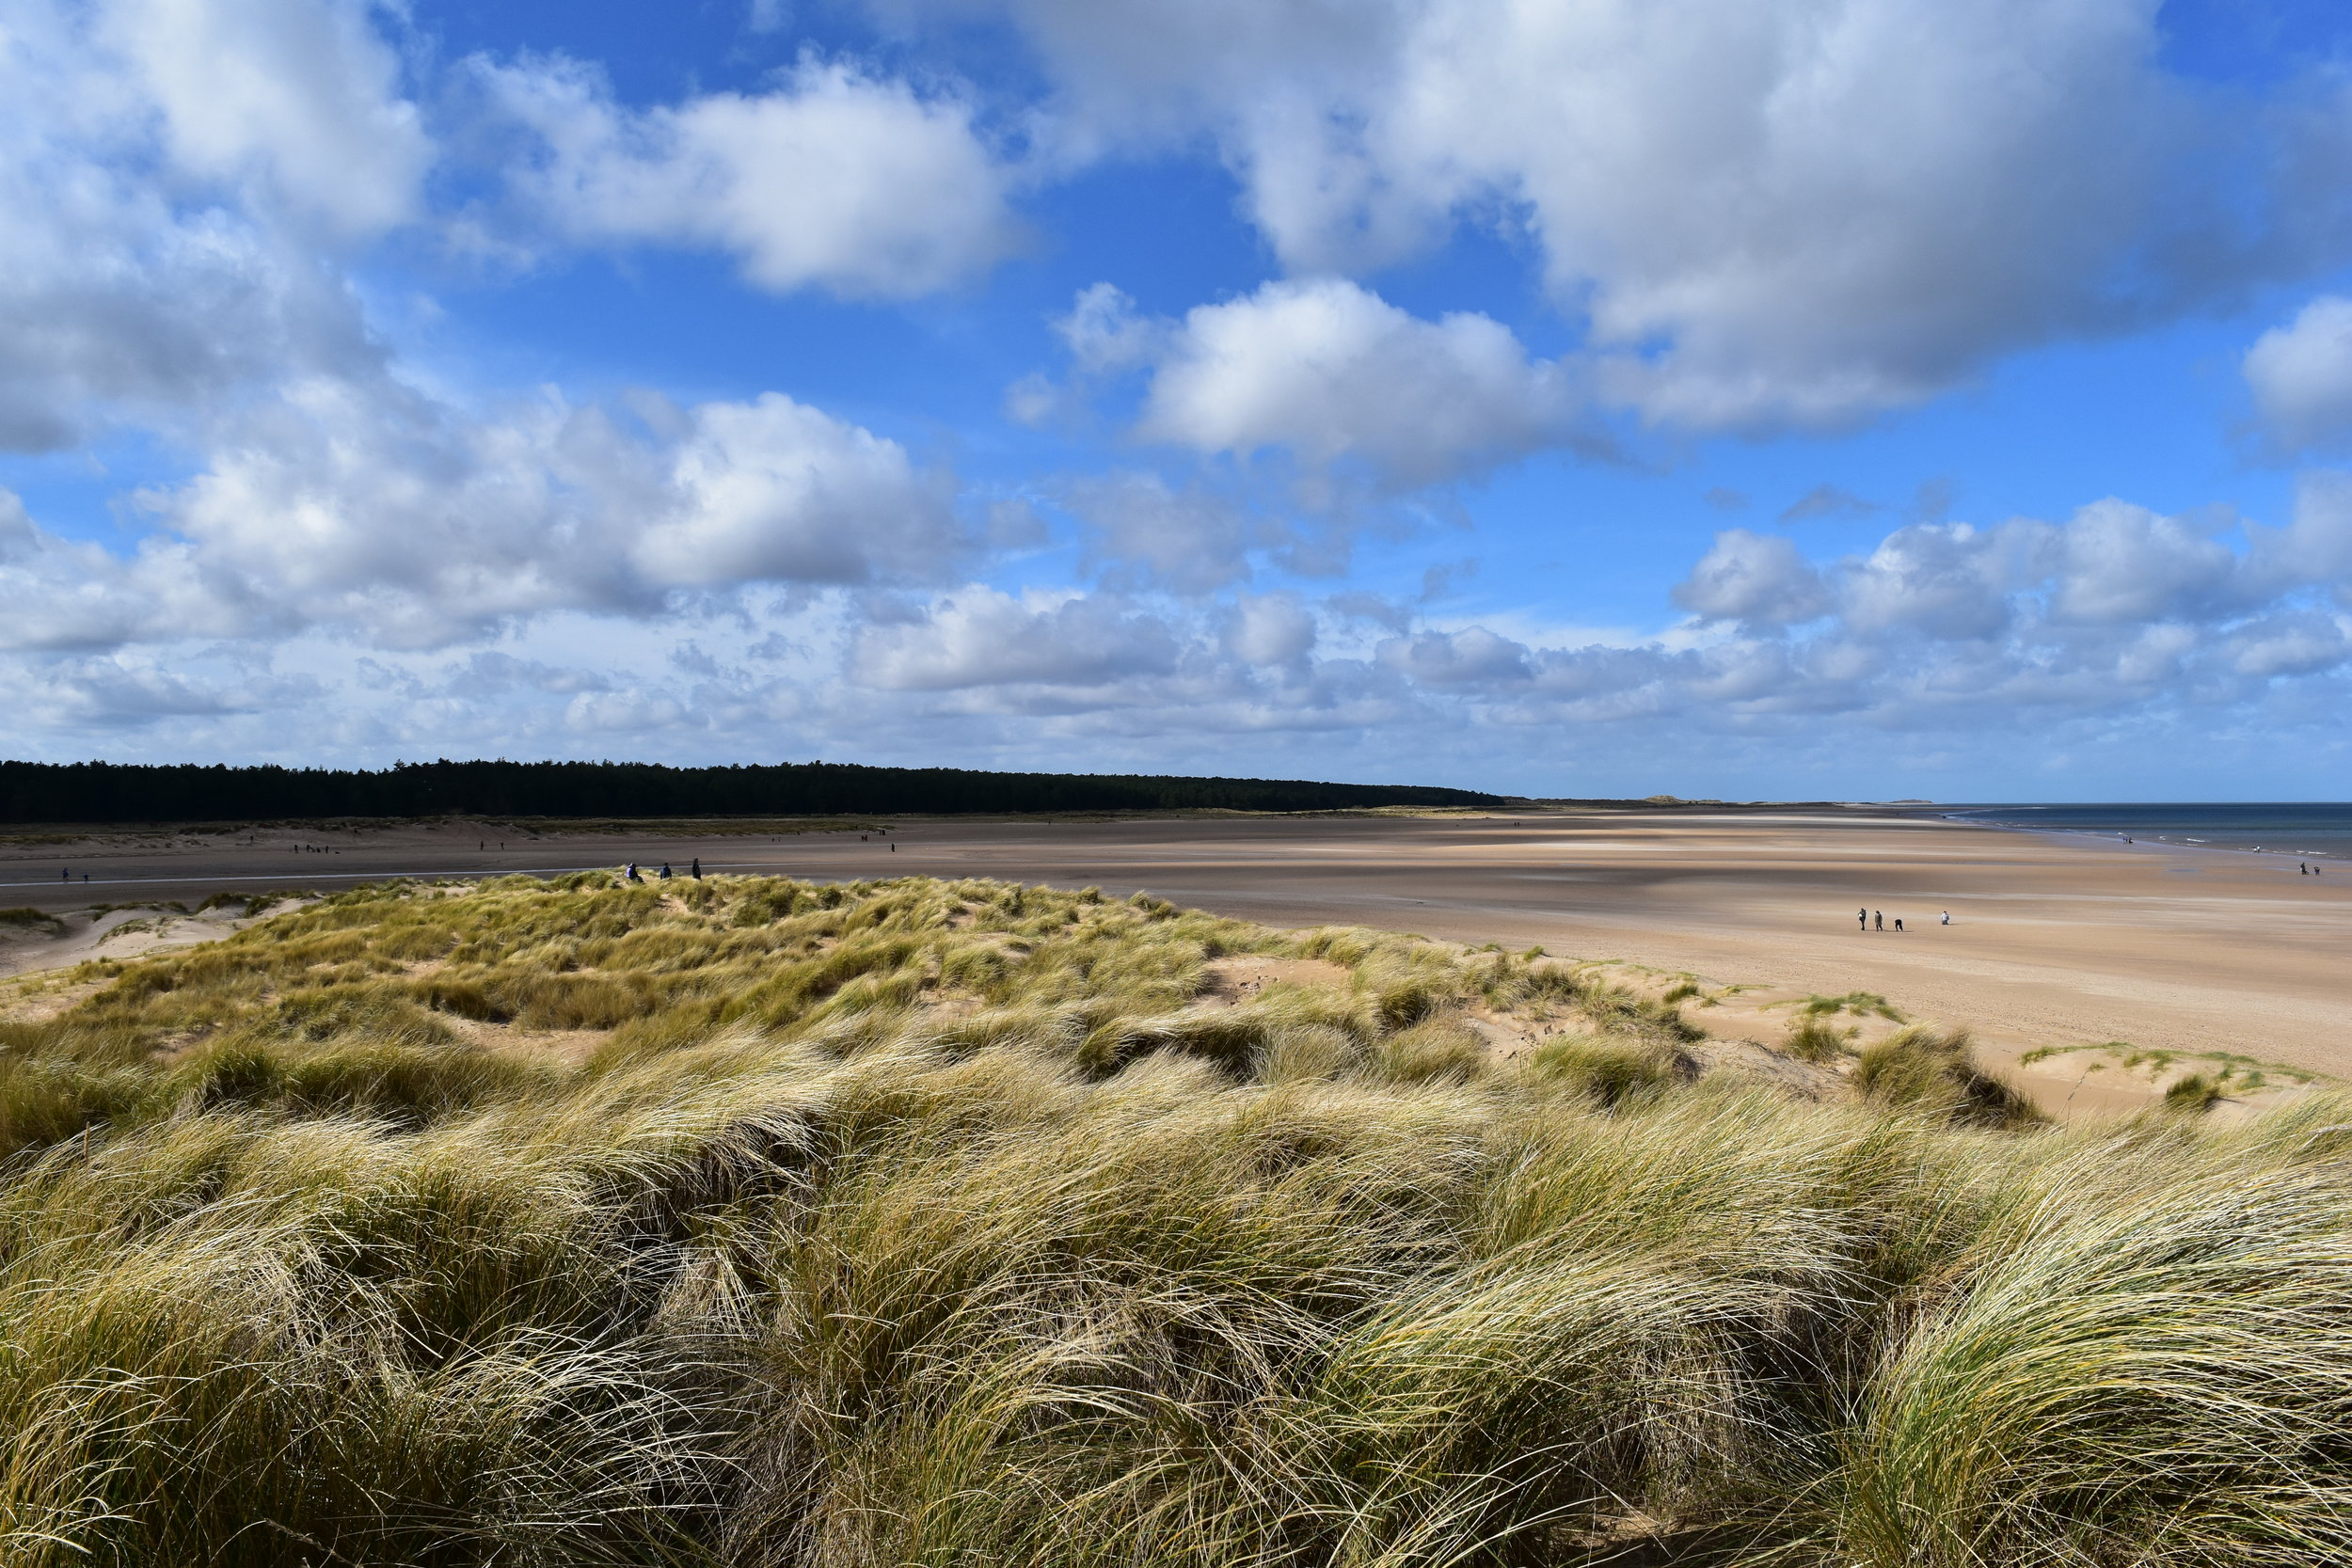 Holkham Beach - 1.5km down the coast from Wells is Holkham.  Deservedly designated an Area of Outstanding Natural Beauty, the wide beach with its rolling sand dunes is home to oyster catchers and ringed plovers.